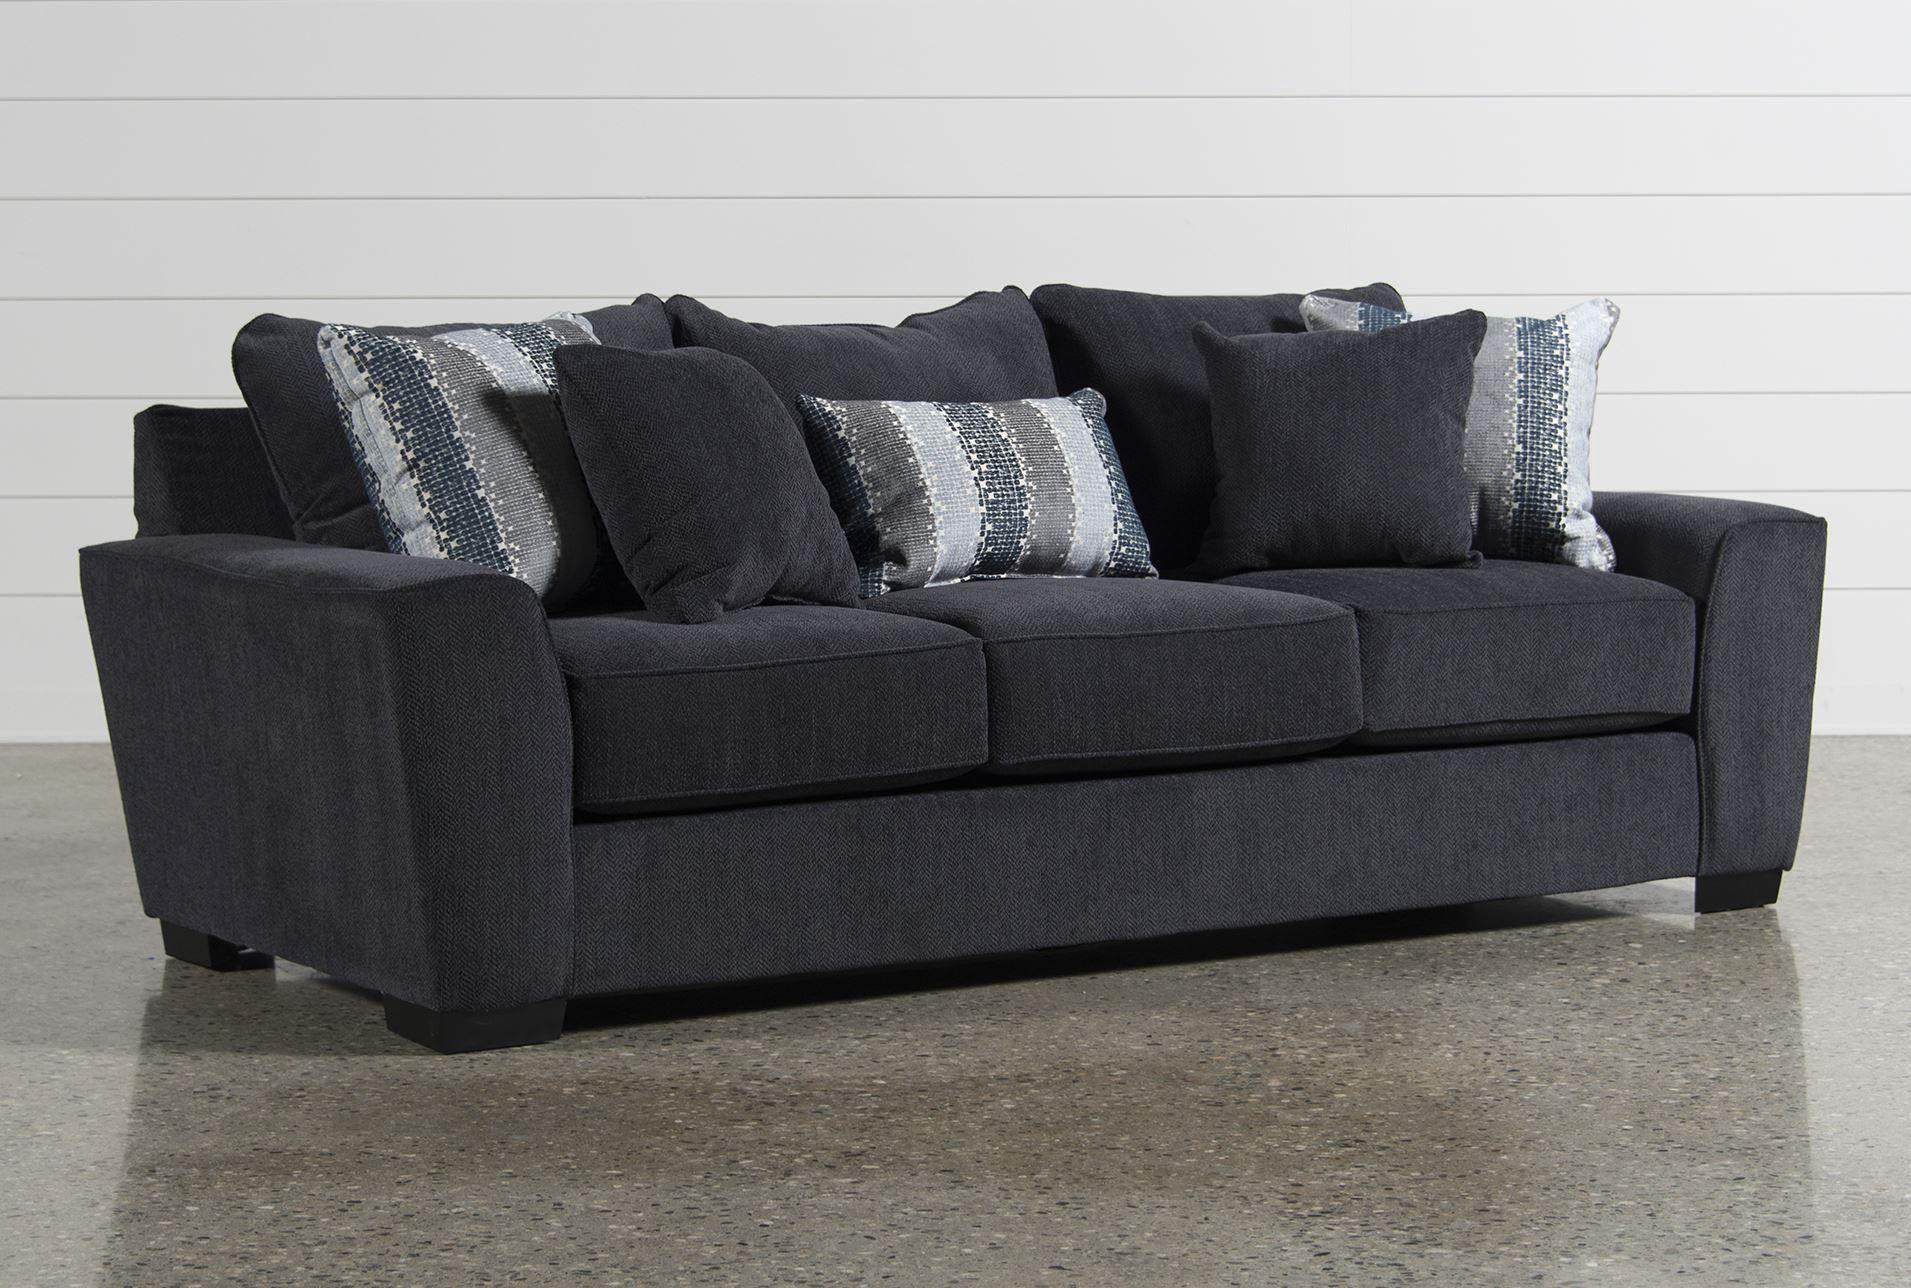 Chair Immaculate Jcpenney Sofas With Mesmerizing Couches with regard to dimensions 1911 X 1288